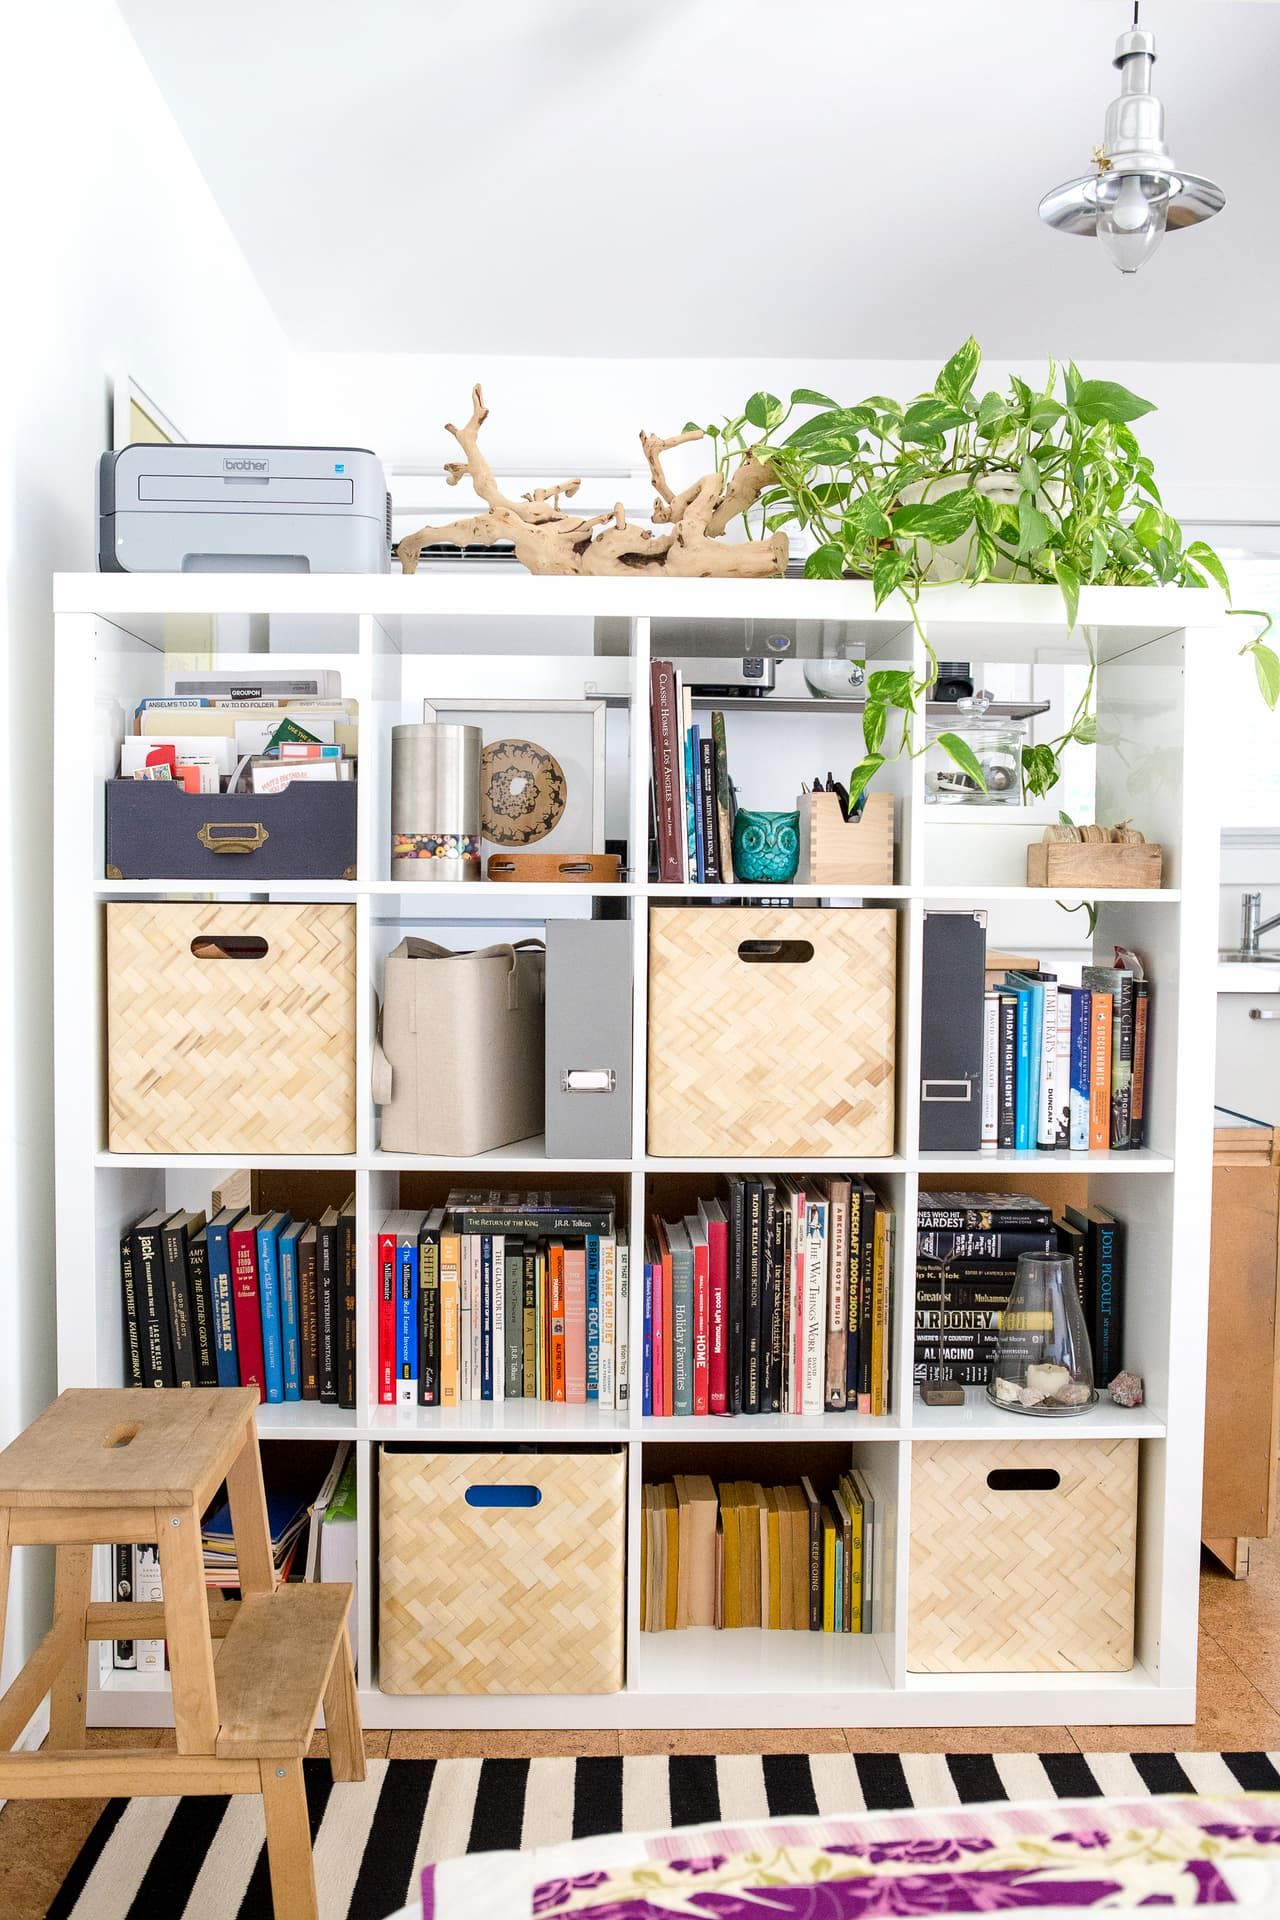 A Modern Mash-Up in a Bright Echo Park Bungalow